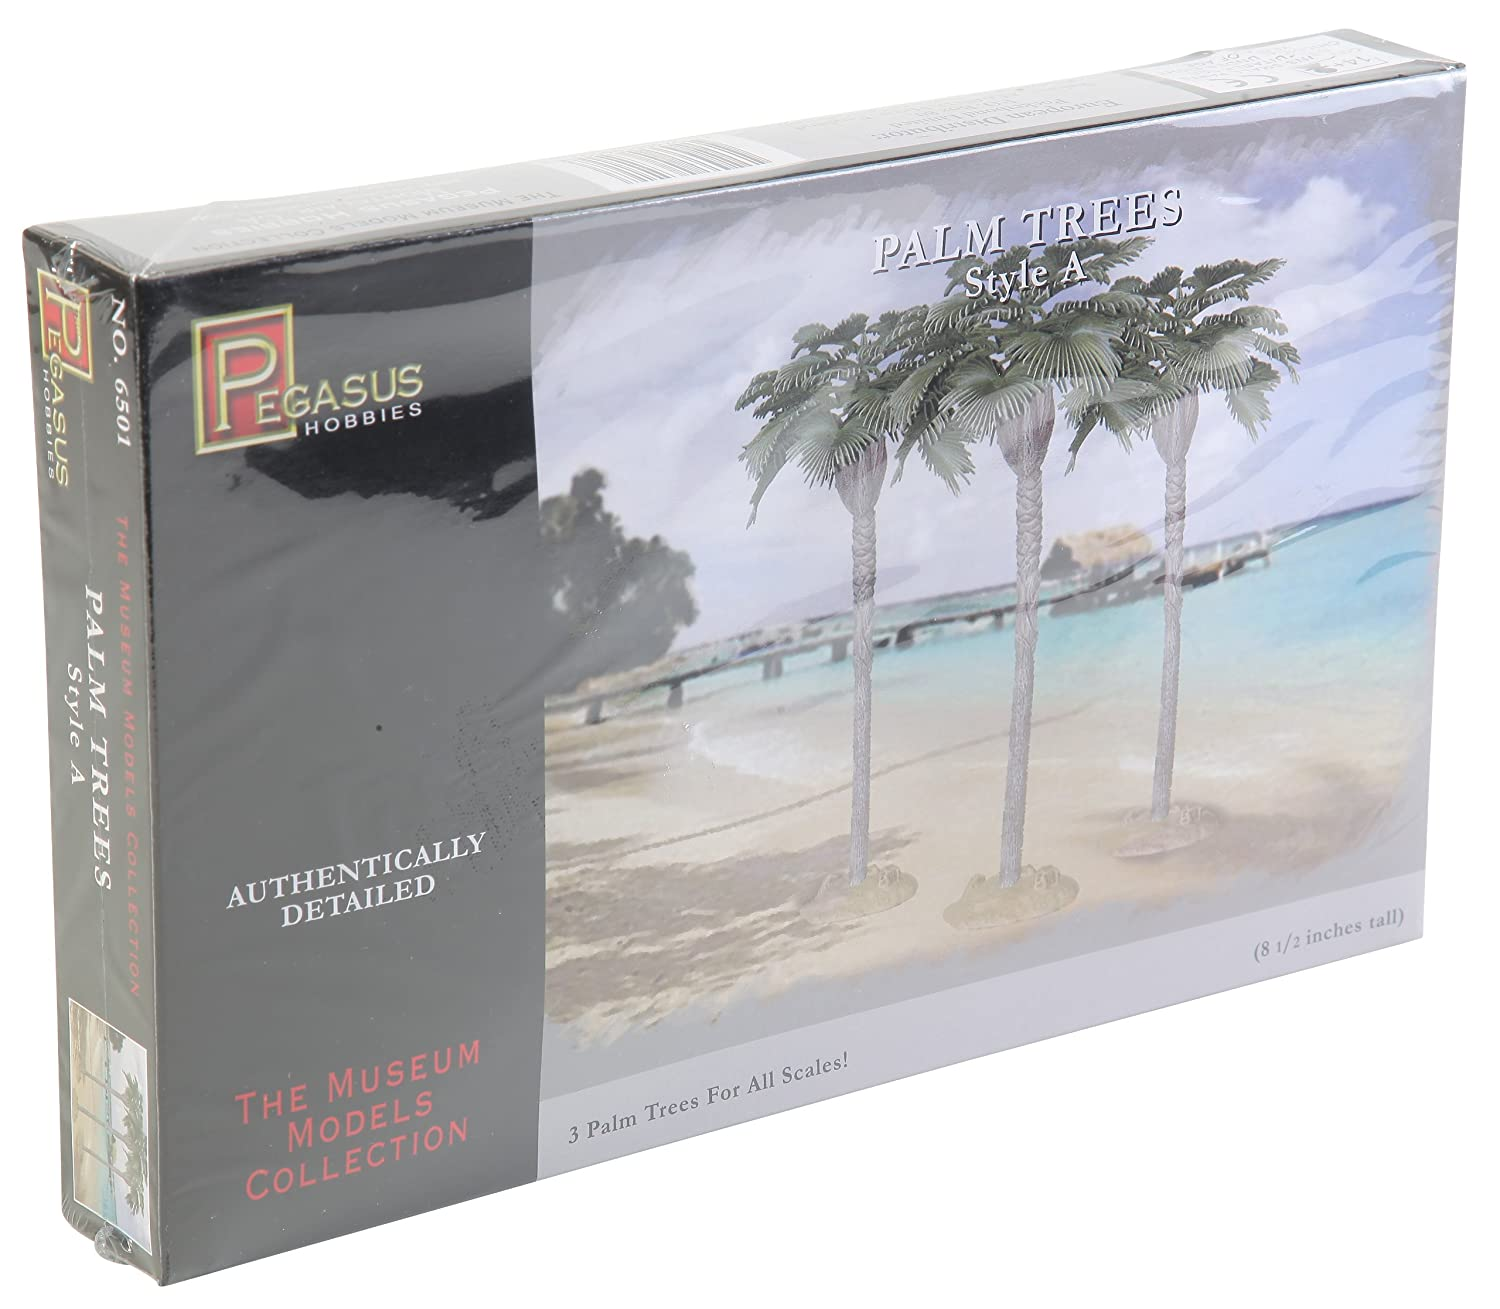 Pegasus Hobbies Fan Leaf Palm Trees 8-1/2 (3) PGH6501 aeroclassics a330 200 vh eba 1 400 jetstar commercial jetliners plane model hobby